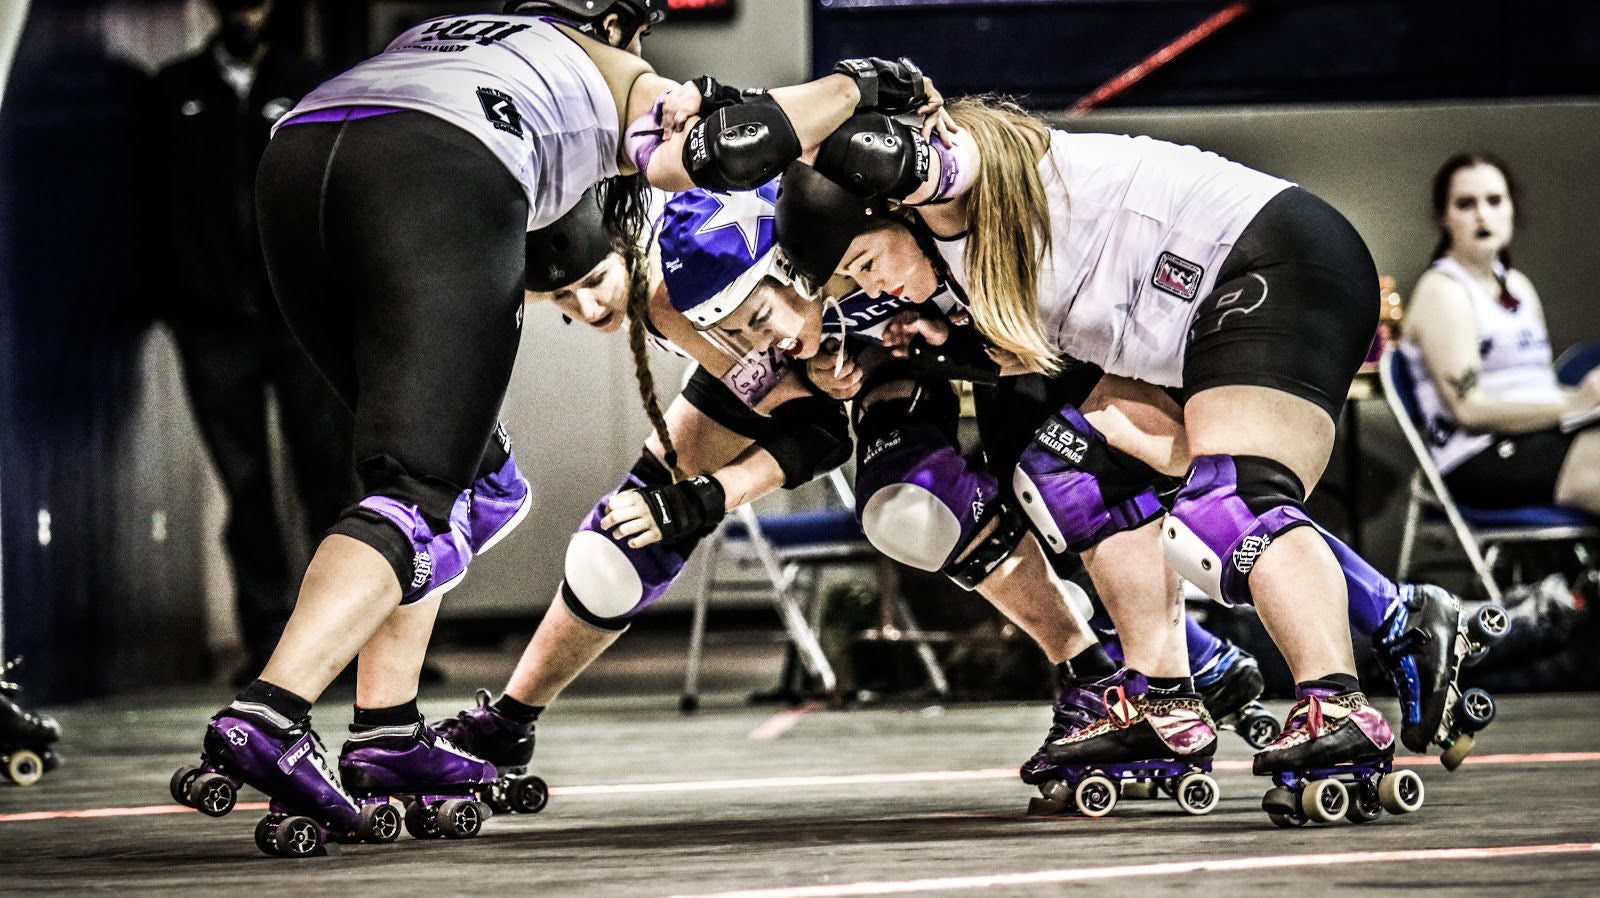 """""""I SHALL PASS!"""" – is what we are imagining Sarah Love (jamming for VRDL Roller Derby) is thinking while gritting her teeth, pushing through a tough Rose City Rollers wall. ©Michele J Hale"""